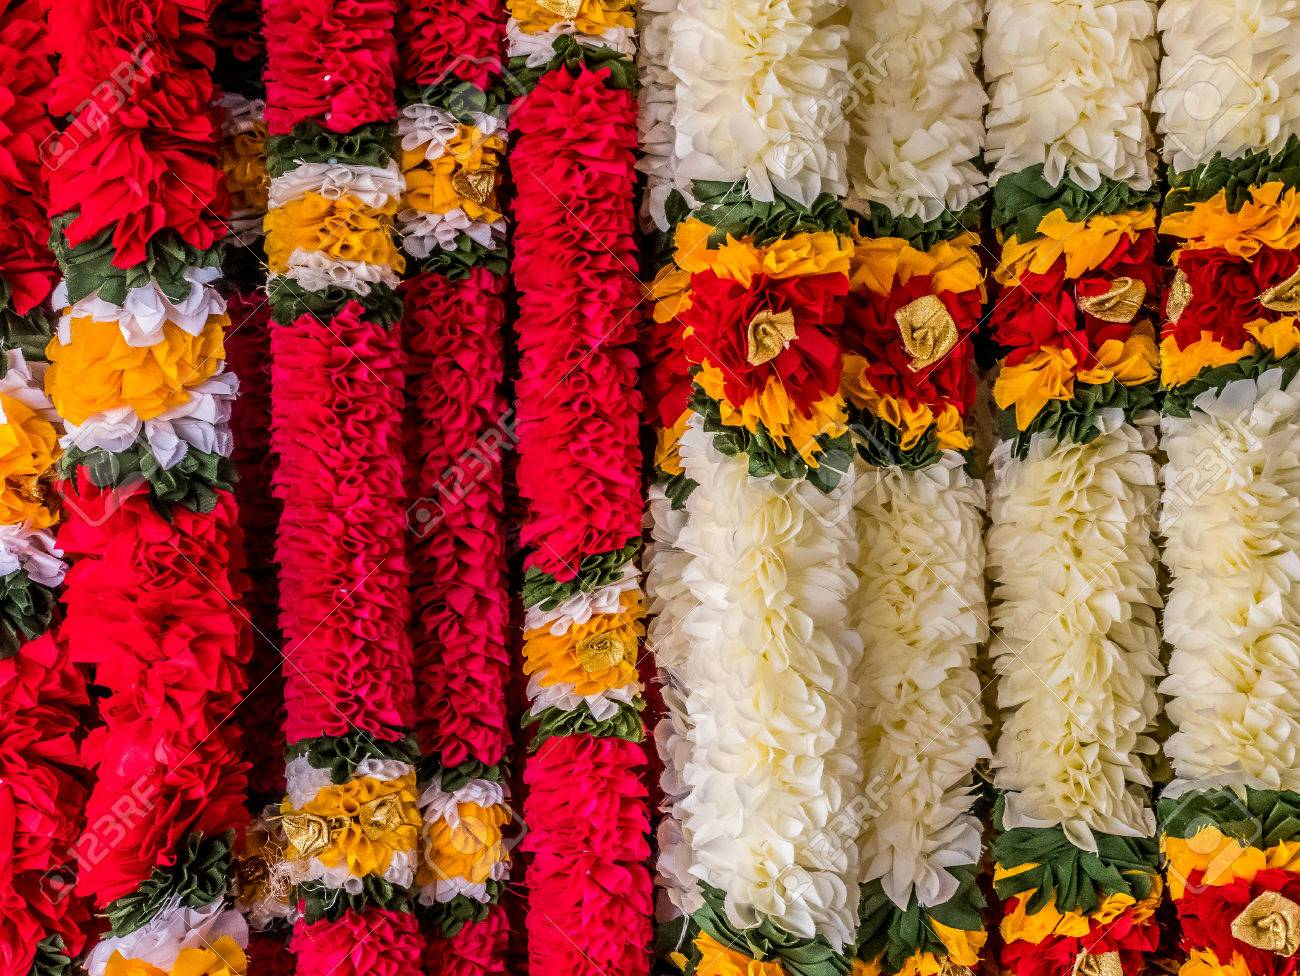 India Garland For Worship Hindu God. Stock Photo, Picture And Royalty Free  Image. Image 70005975.